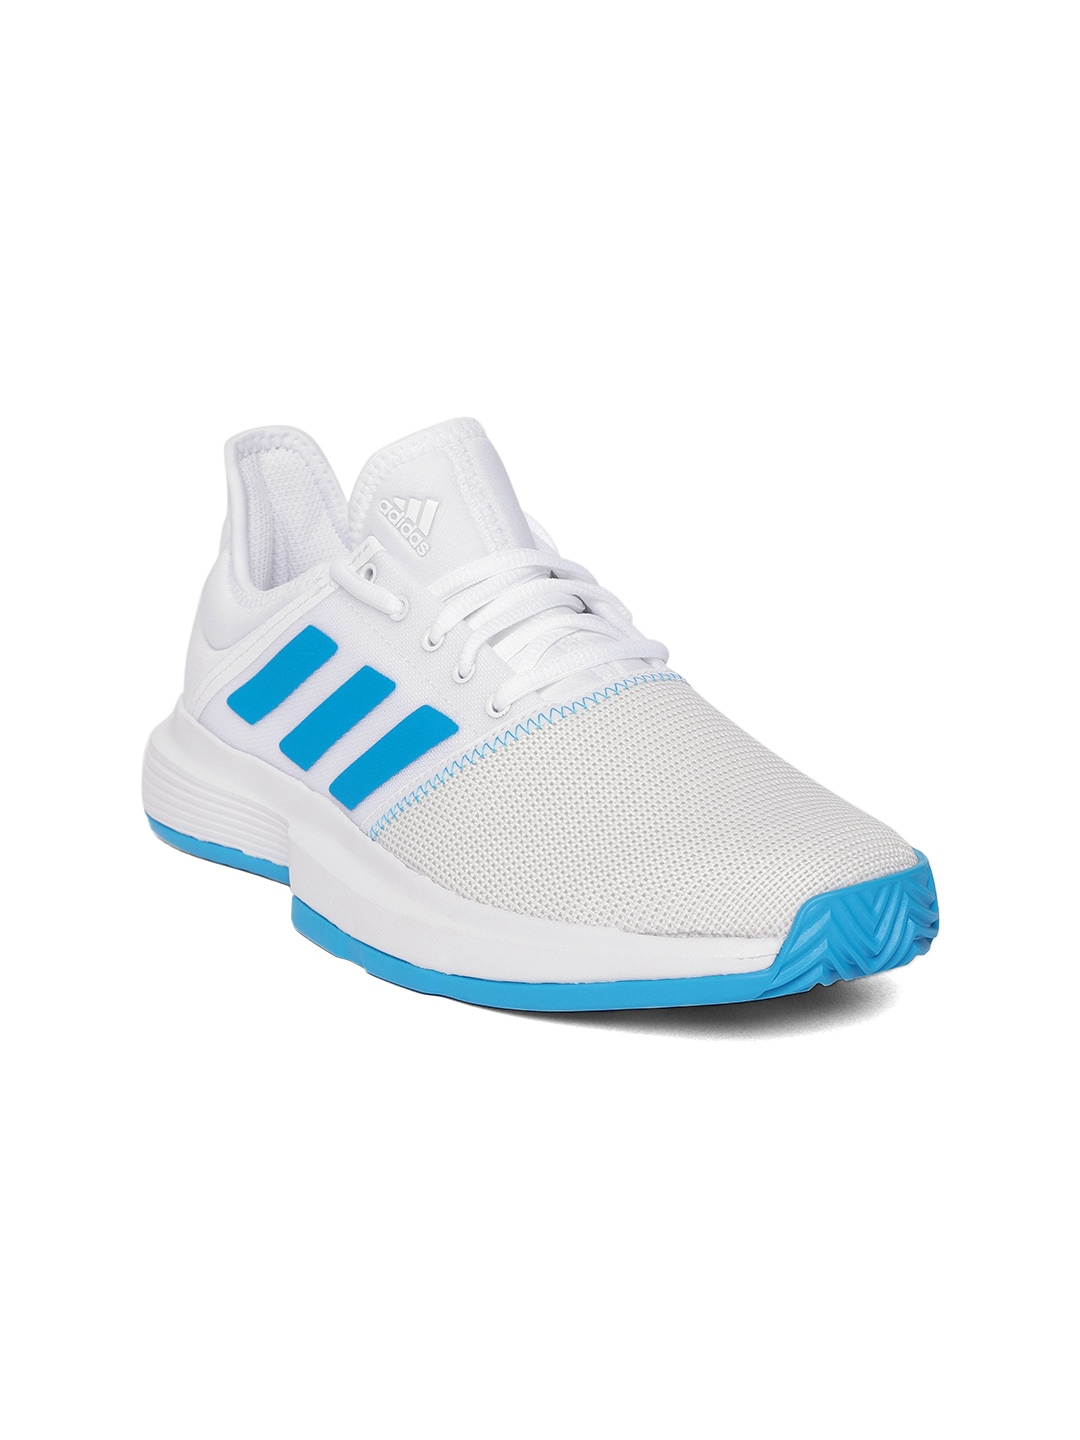 new arrival 75437 85802 Women s Adidas Shoes - Buy Adidas Shoes for Women Online in India